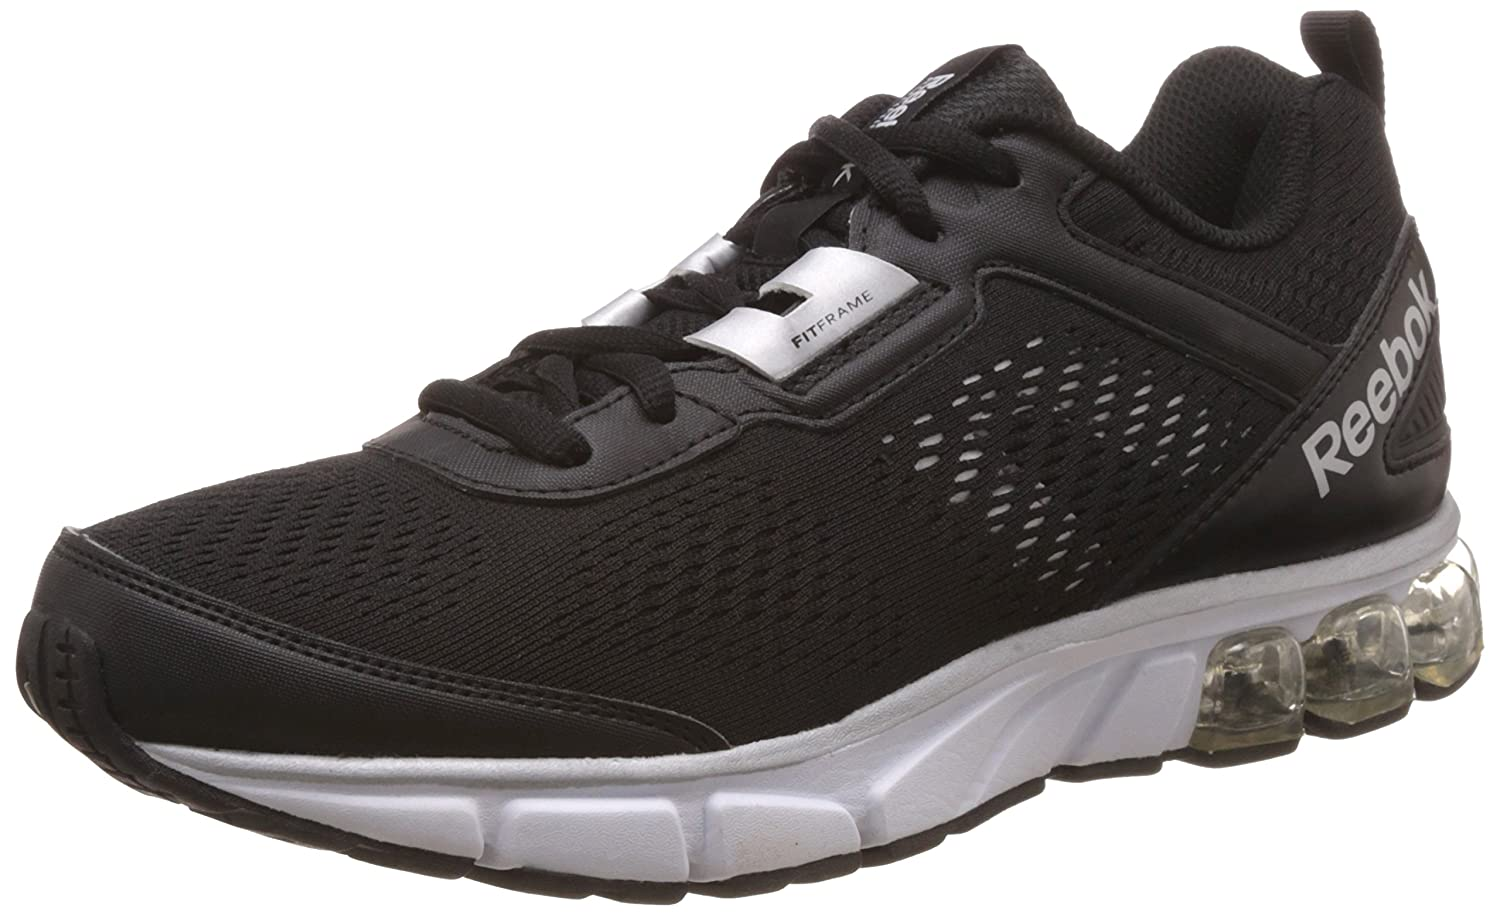 buy online 1a962 2d51f Reebok Men s Jet Dashride Running Shoes  Buy Online at Low Prices in India  - Amazon.in